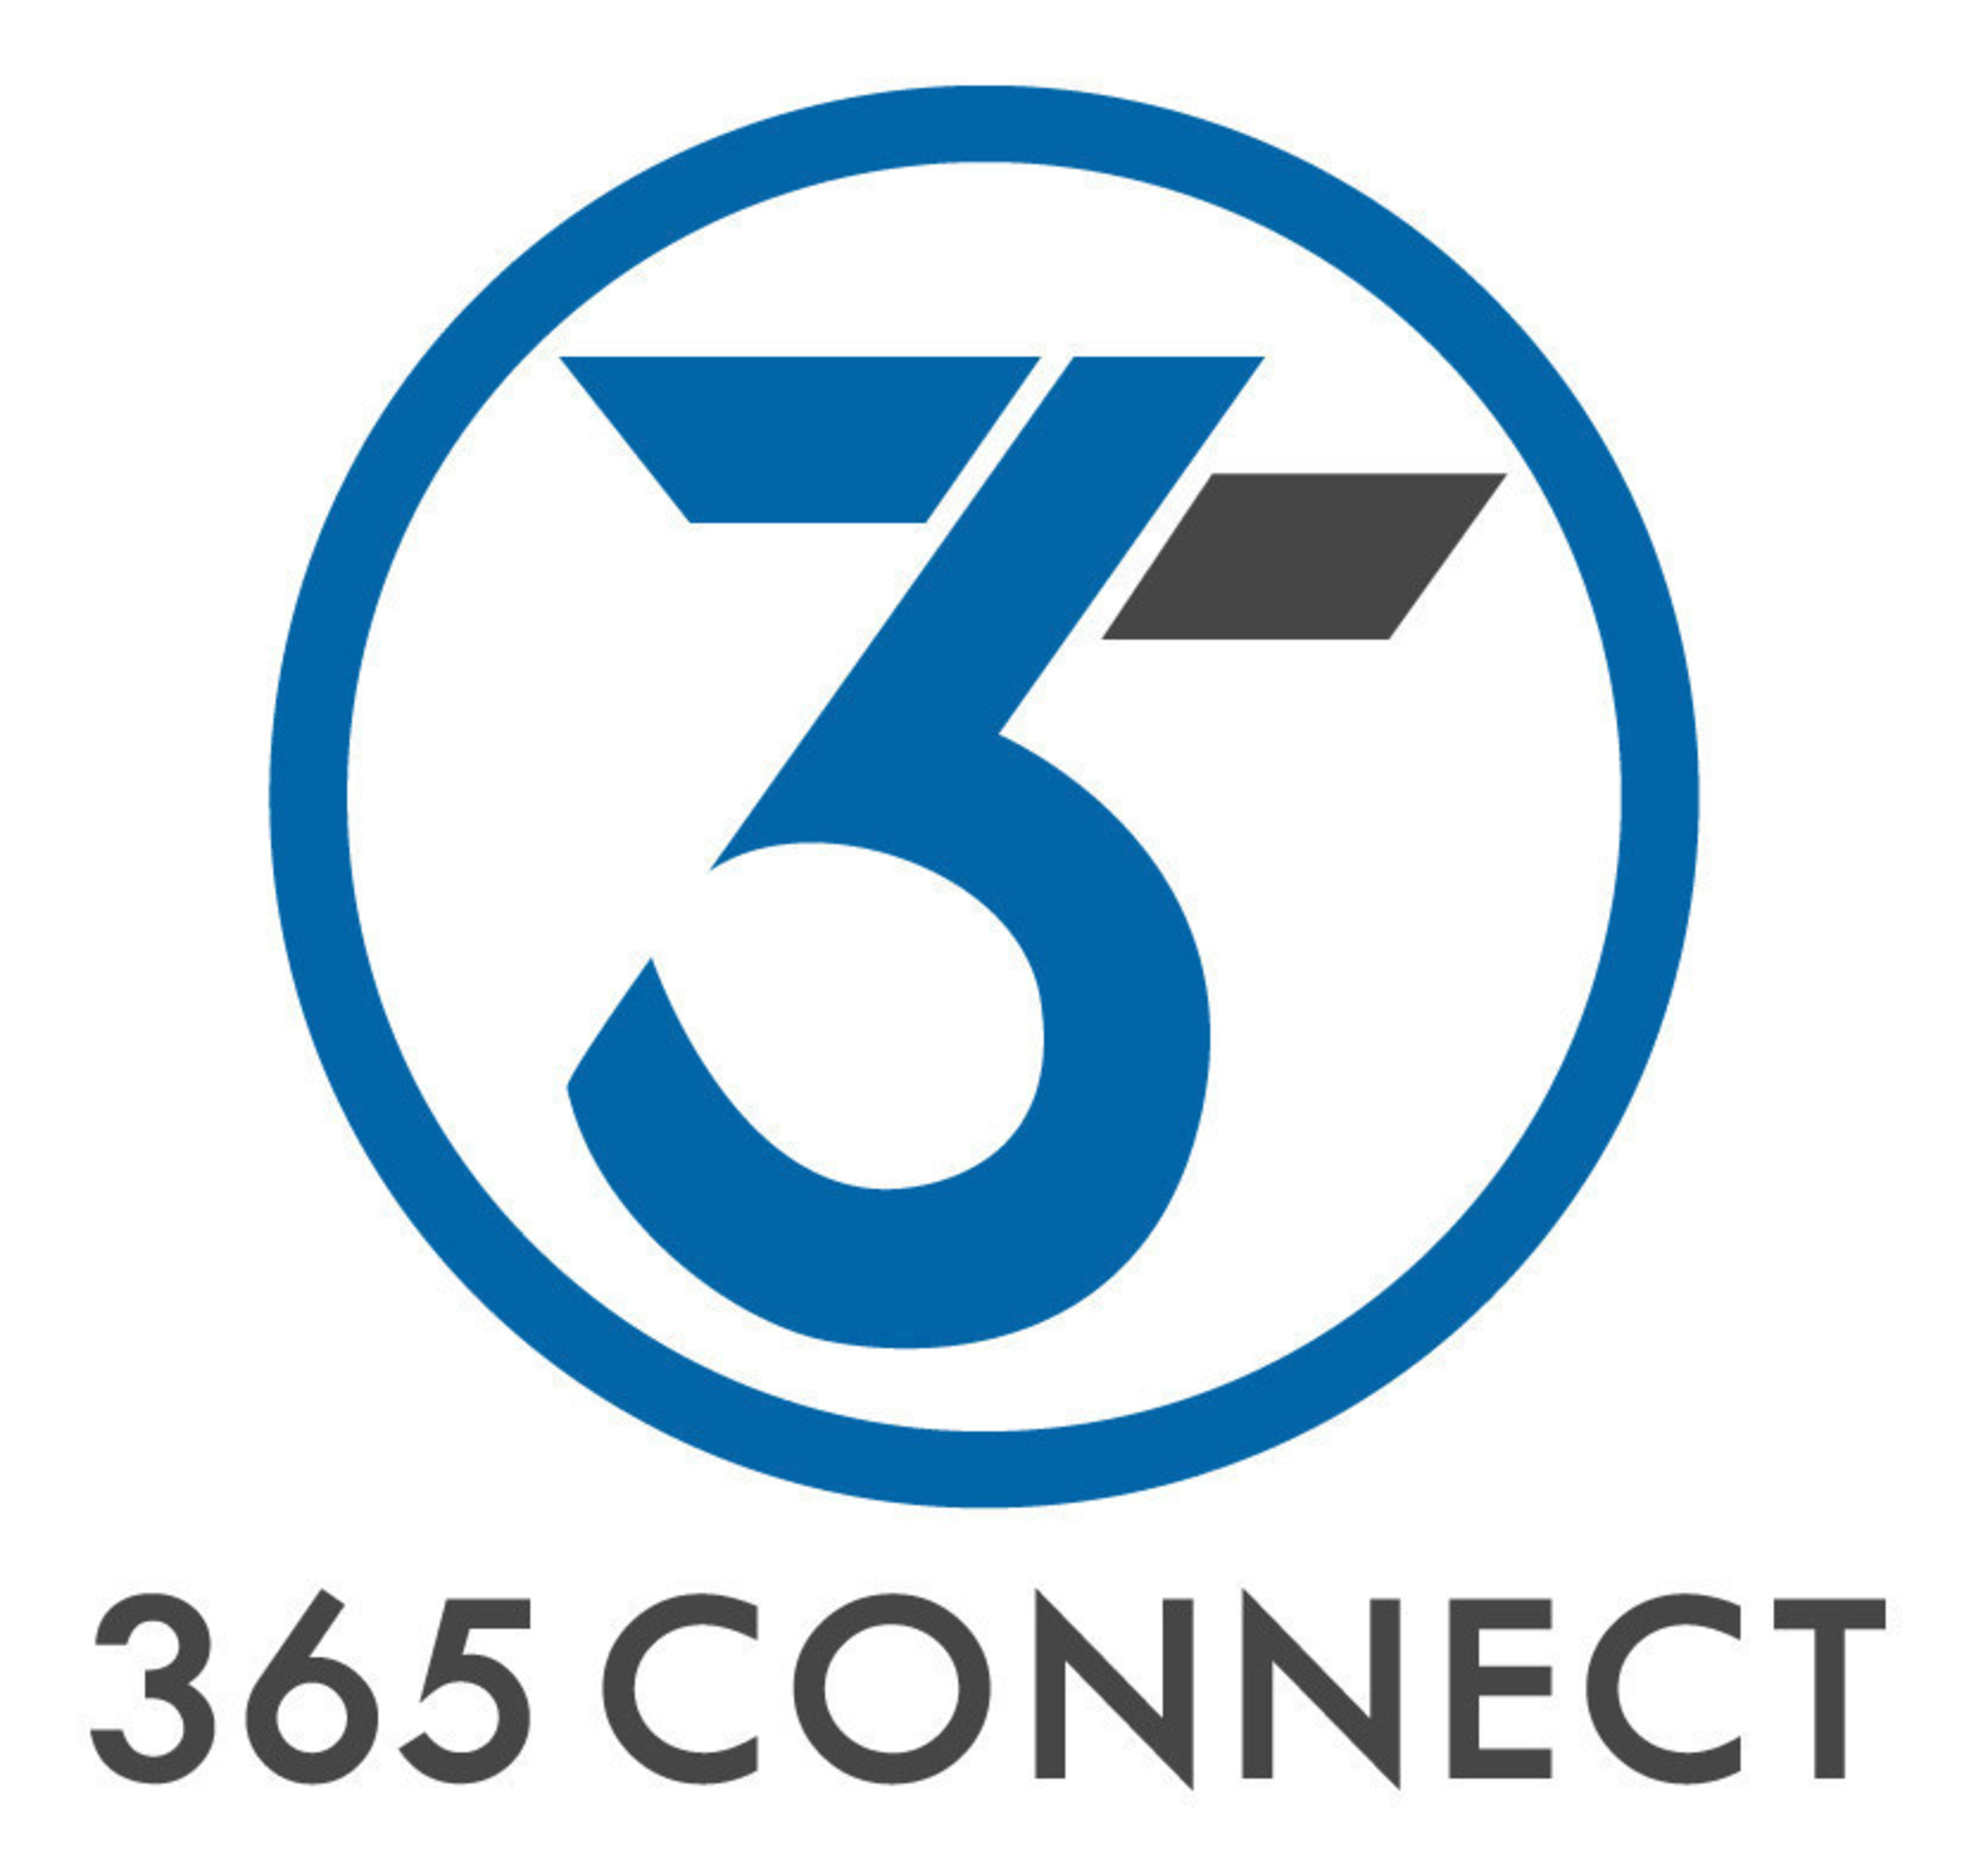 National Apartment Association: 365 Connect To Participate At National Apartment